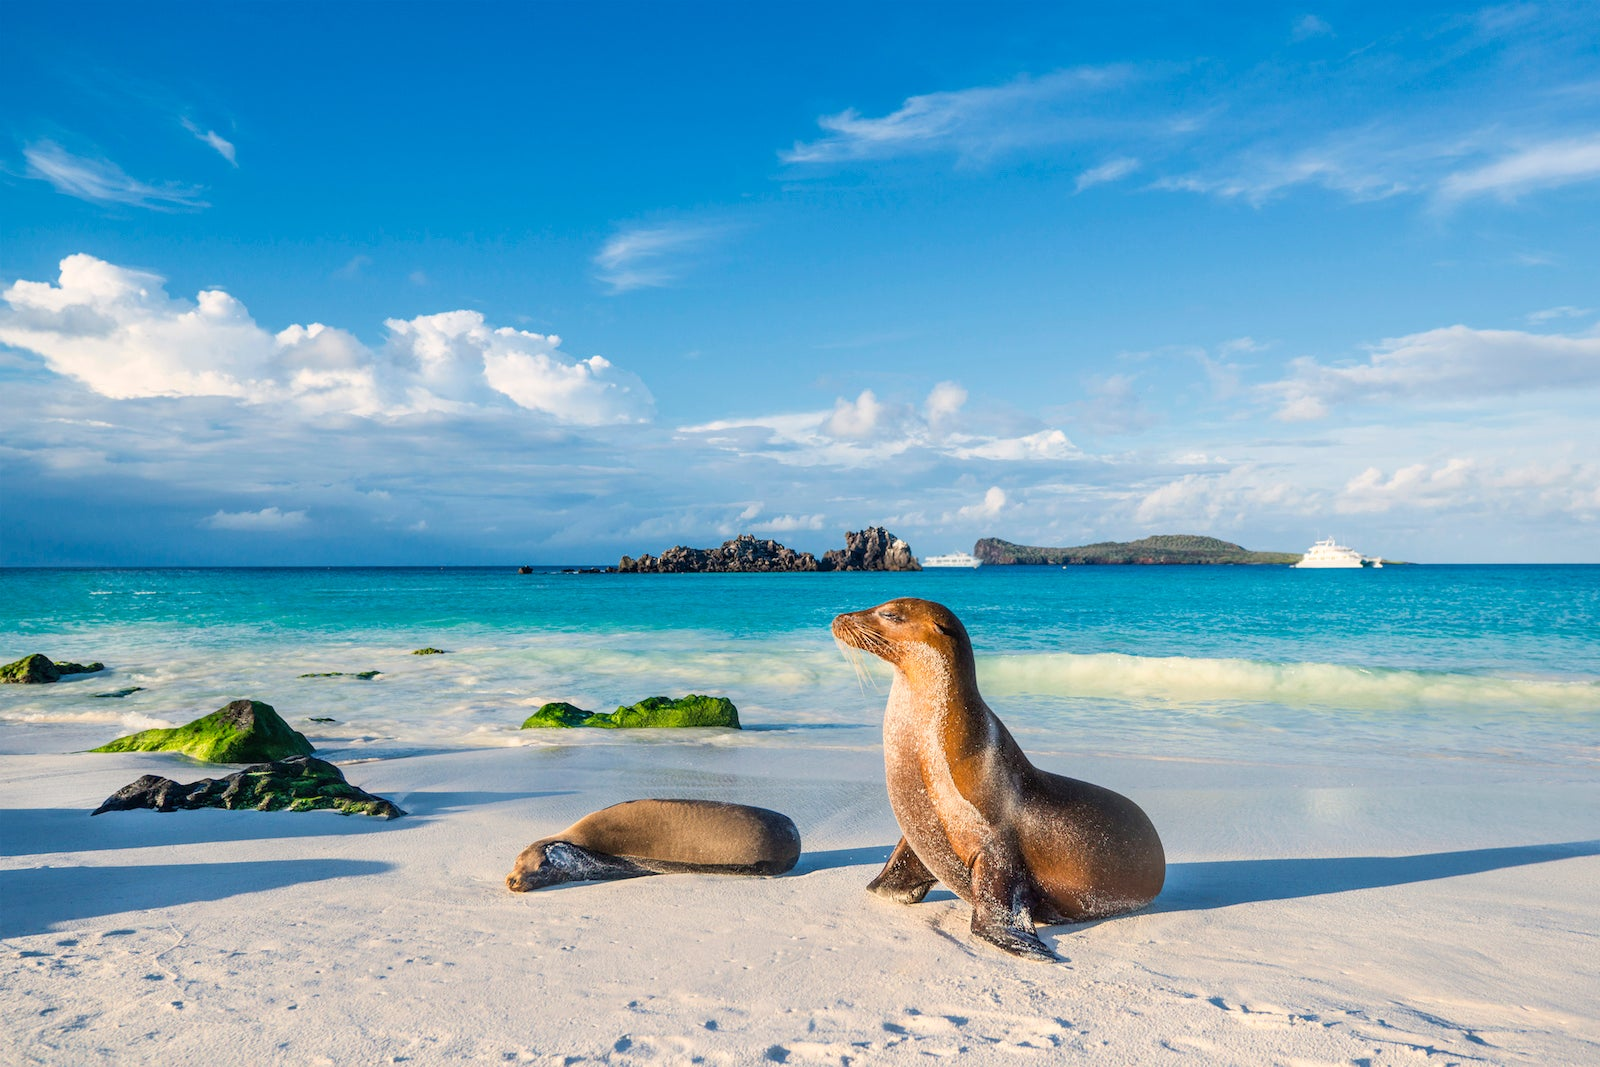 How I saved thousands of dollars by DIY-ing an island hopping trip in the Galapagos - The Points Guy